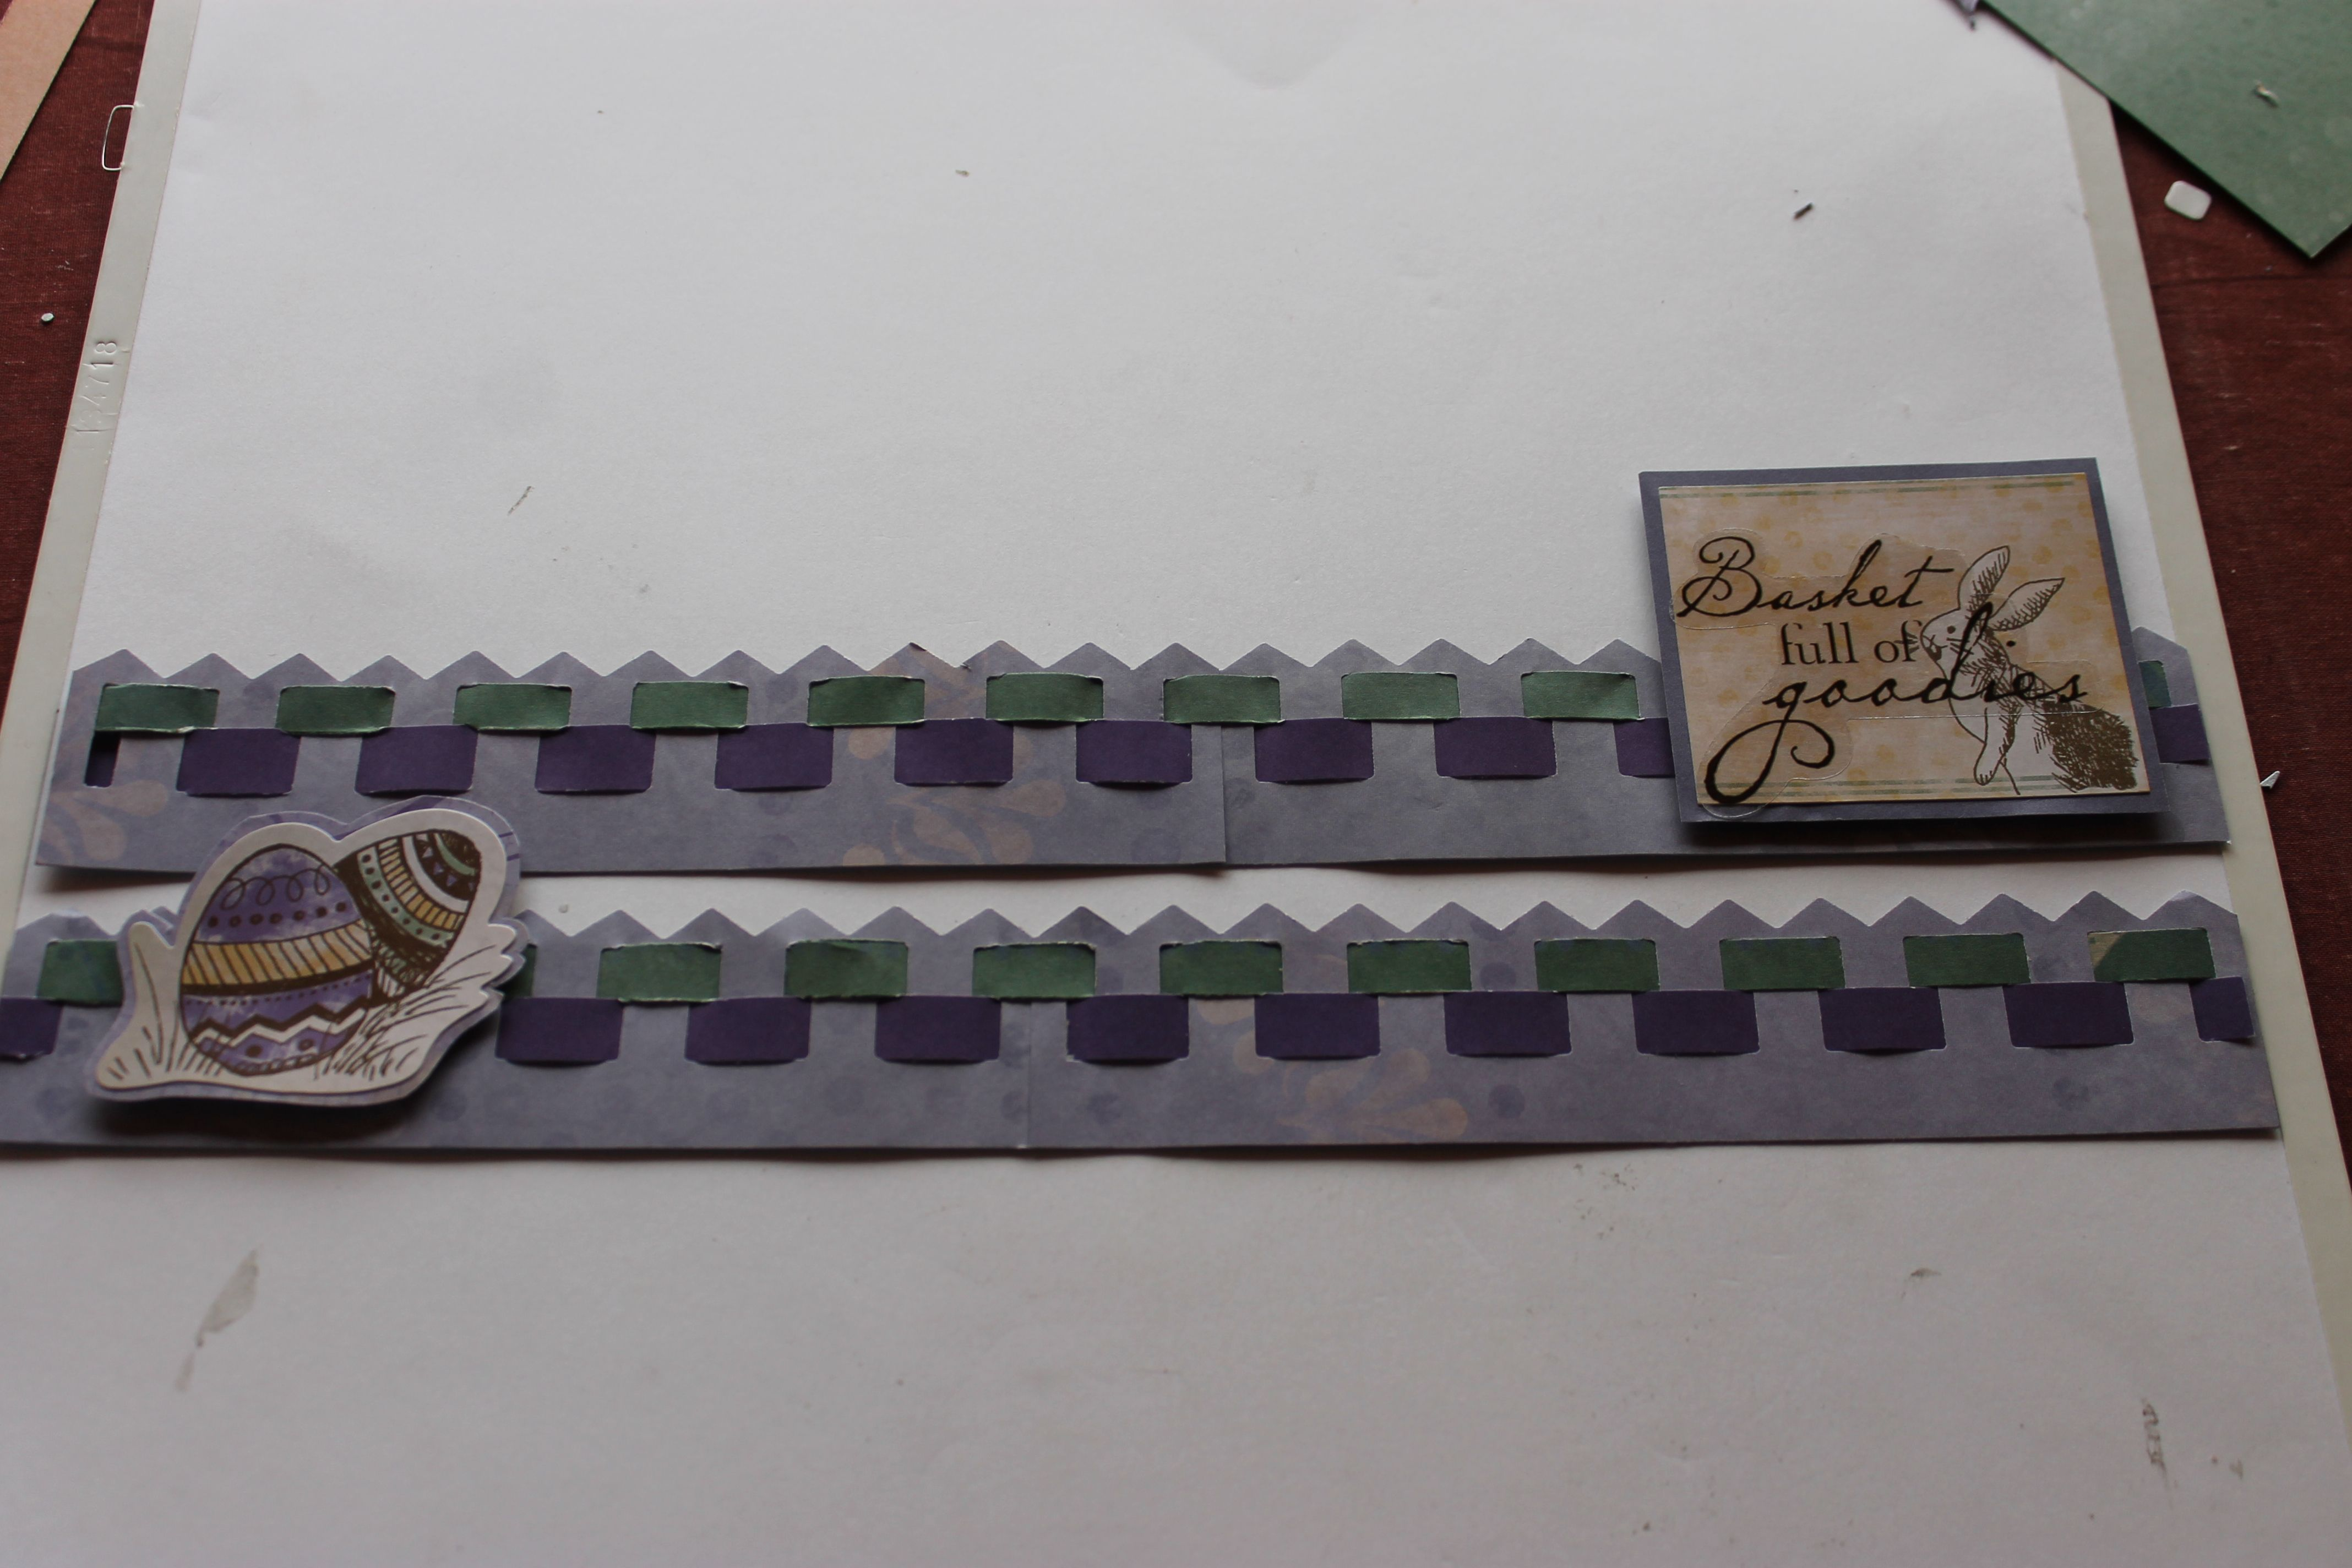 Scrapbook border ideas - Jewel Paper And Stickers Picket Fence Bordermaker Cartridge Scrapbooking Boardersscrapbook Borderscrapbooking Papercraftsscrapbooking Ideasfence